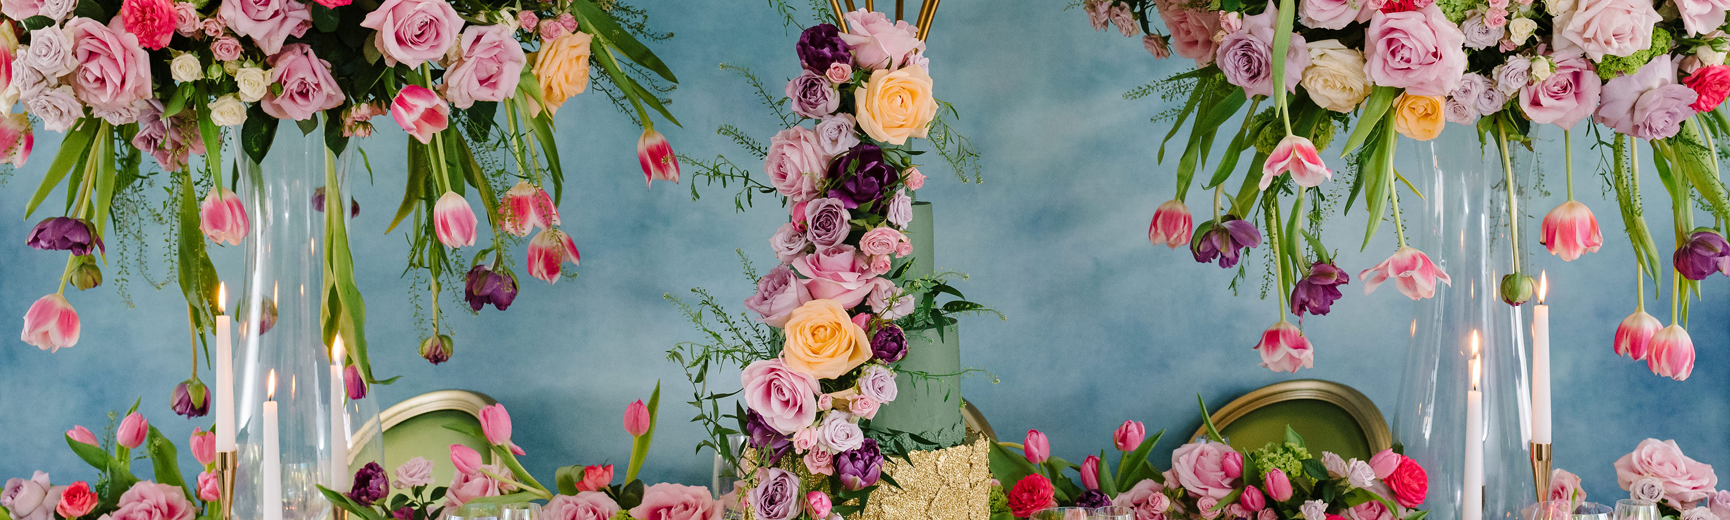 Wedding cake on a top table